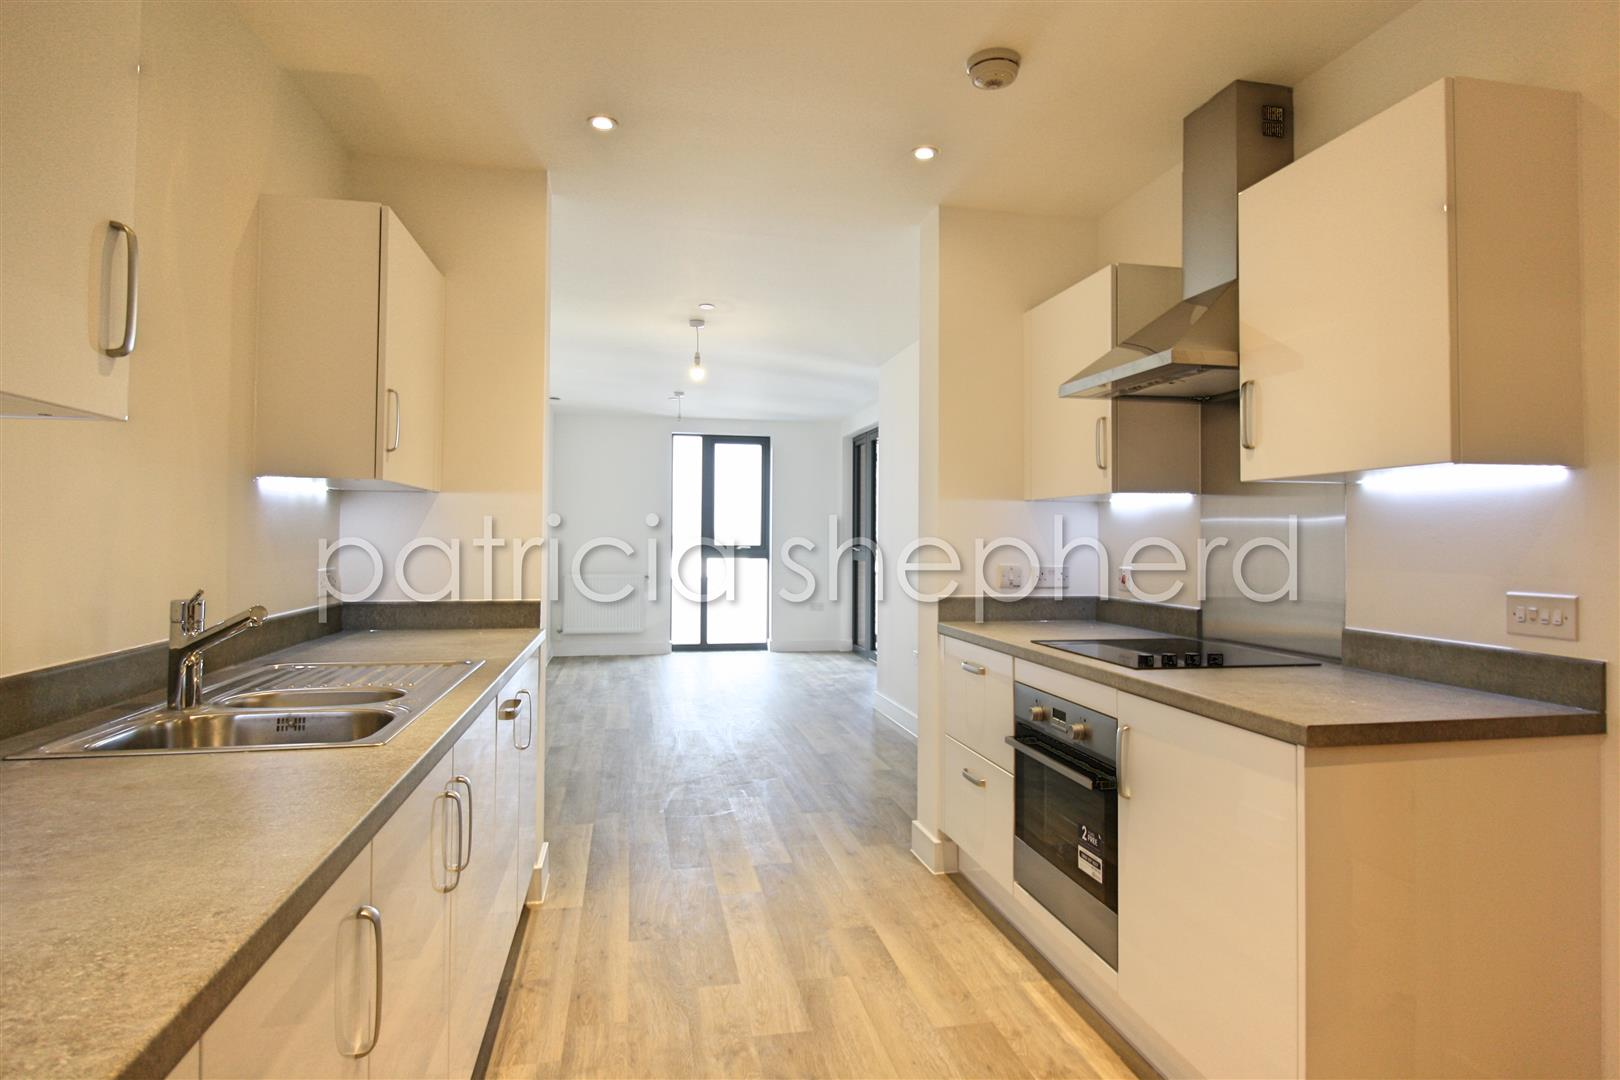 1 bed flat to rent in Tavernelle House, 289 High Street - Property Image 1